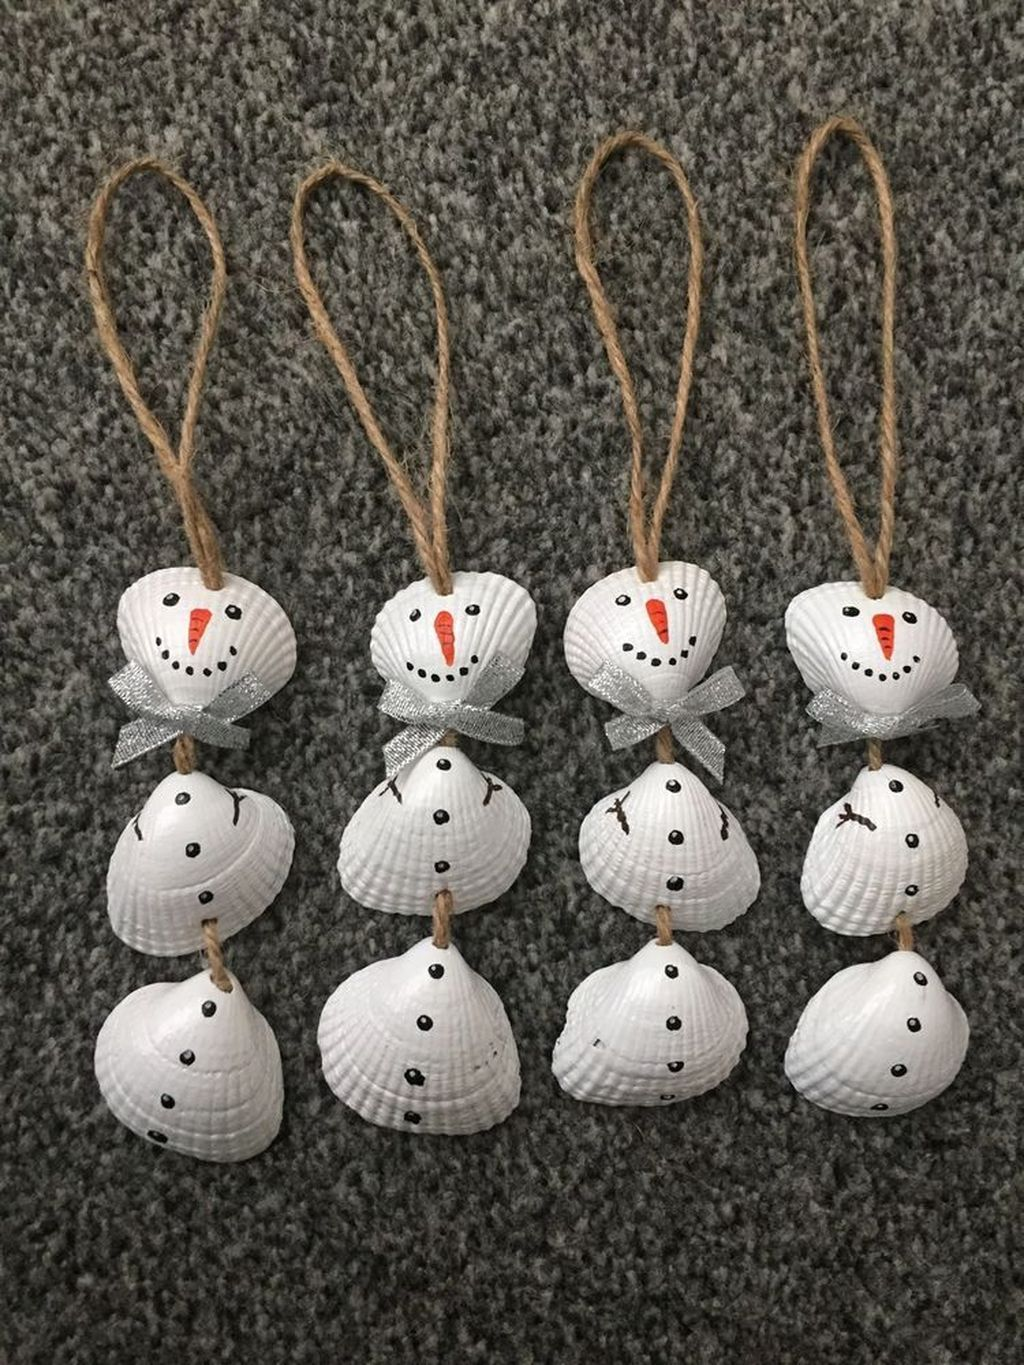 Beautiful Christmas Tree Ornaments Ideas You Must Have 17 is part of Shell crafts diy, Mason jar crafts diy, Seashell crafts, Painted christmas ornaments, Wine bottle diy crafts, Shell crafts - Beautiful Christmas Tree Ornaments Ideas You Must Have 17